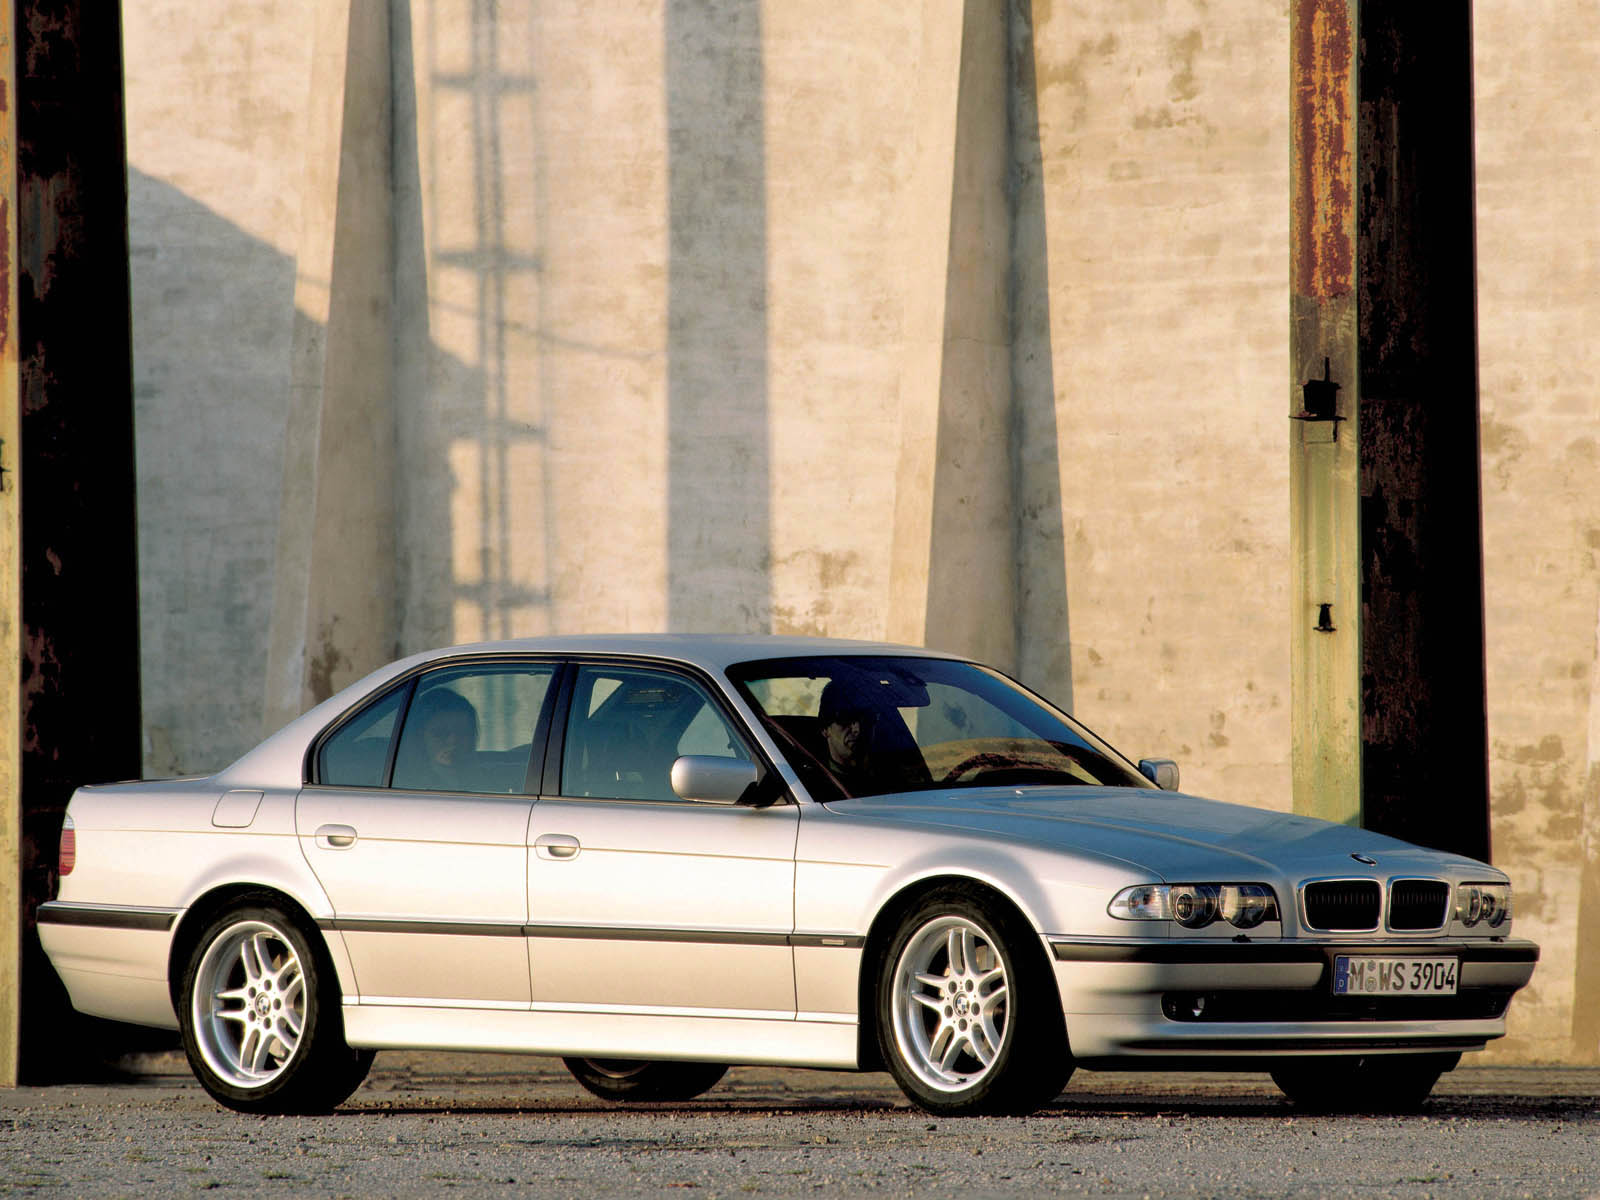 bmw 7 series e38 picture 10126 bmw photo gallery. Black Bedroom Furniture Sets. Home Design Ideas